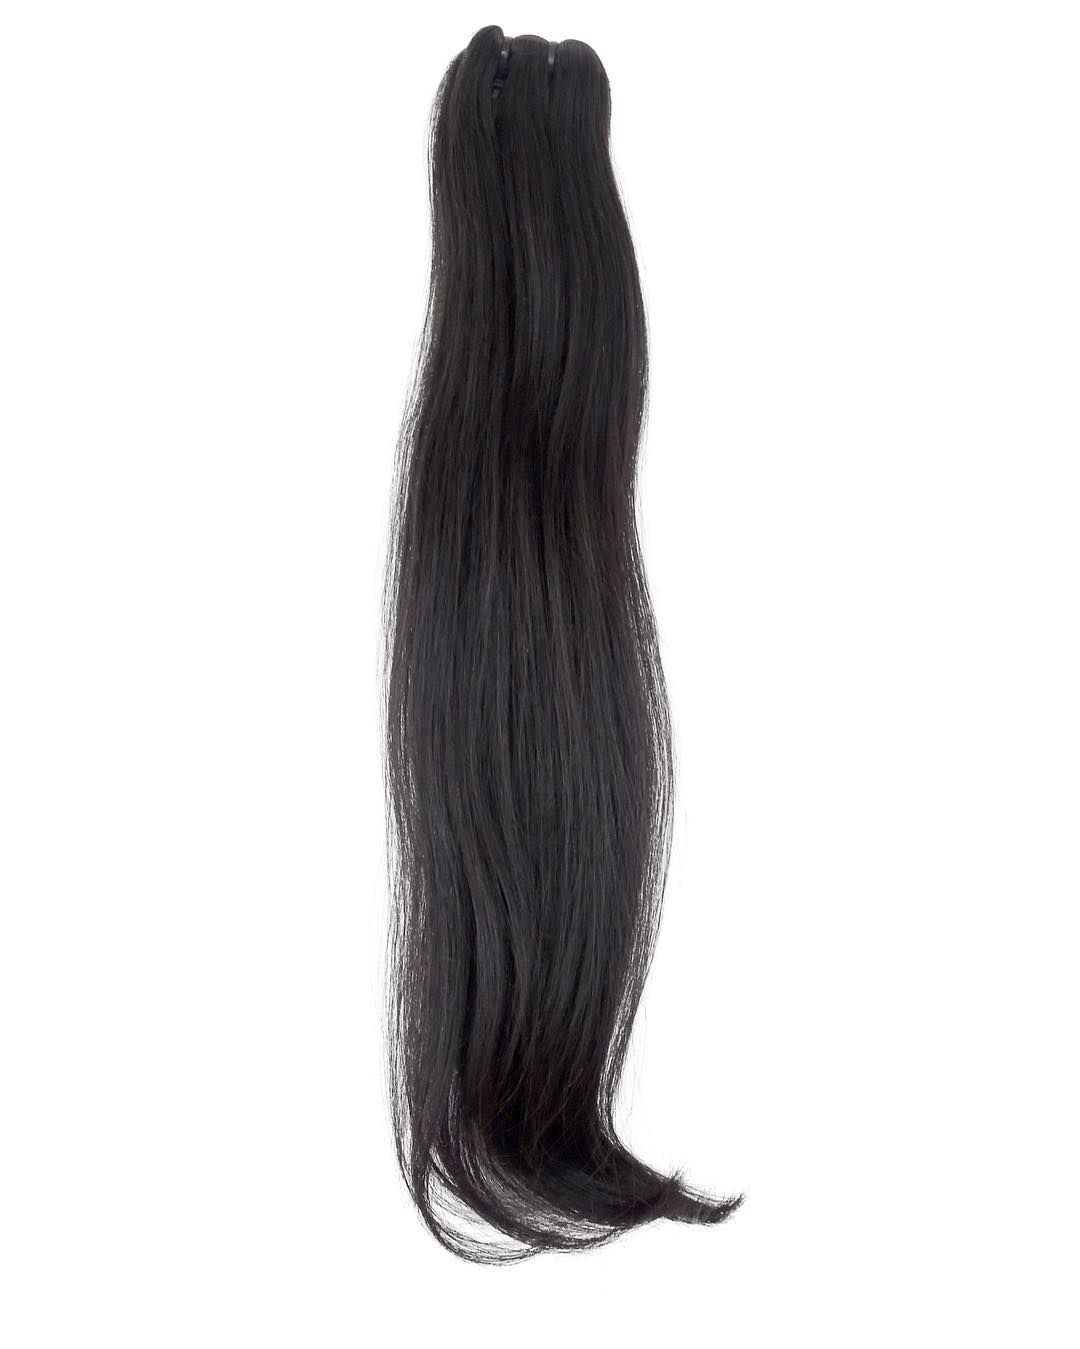 Superior Virgin Remy Hair Wefts The Best Real Human Hair Extensions